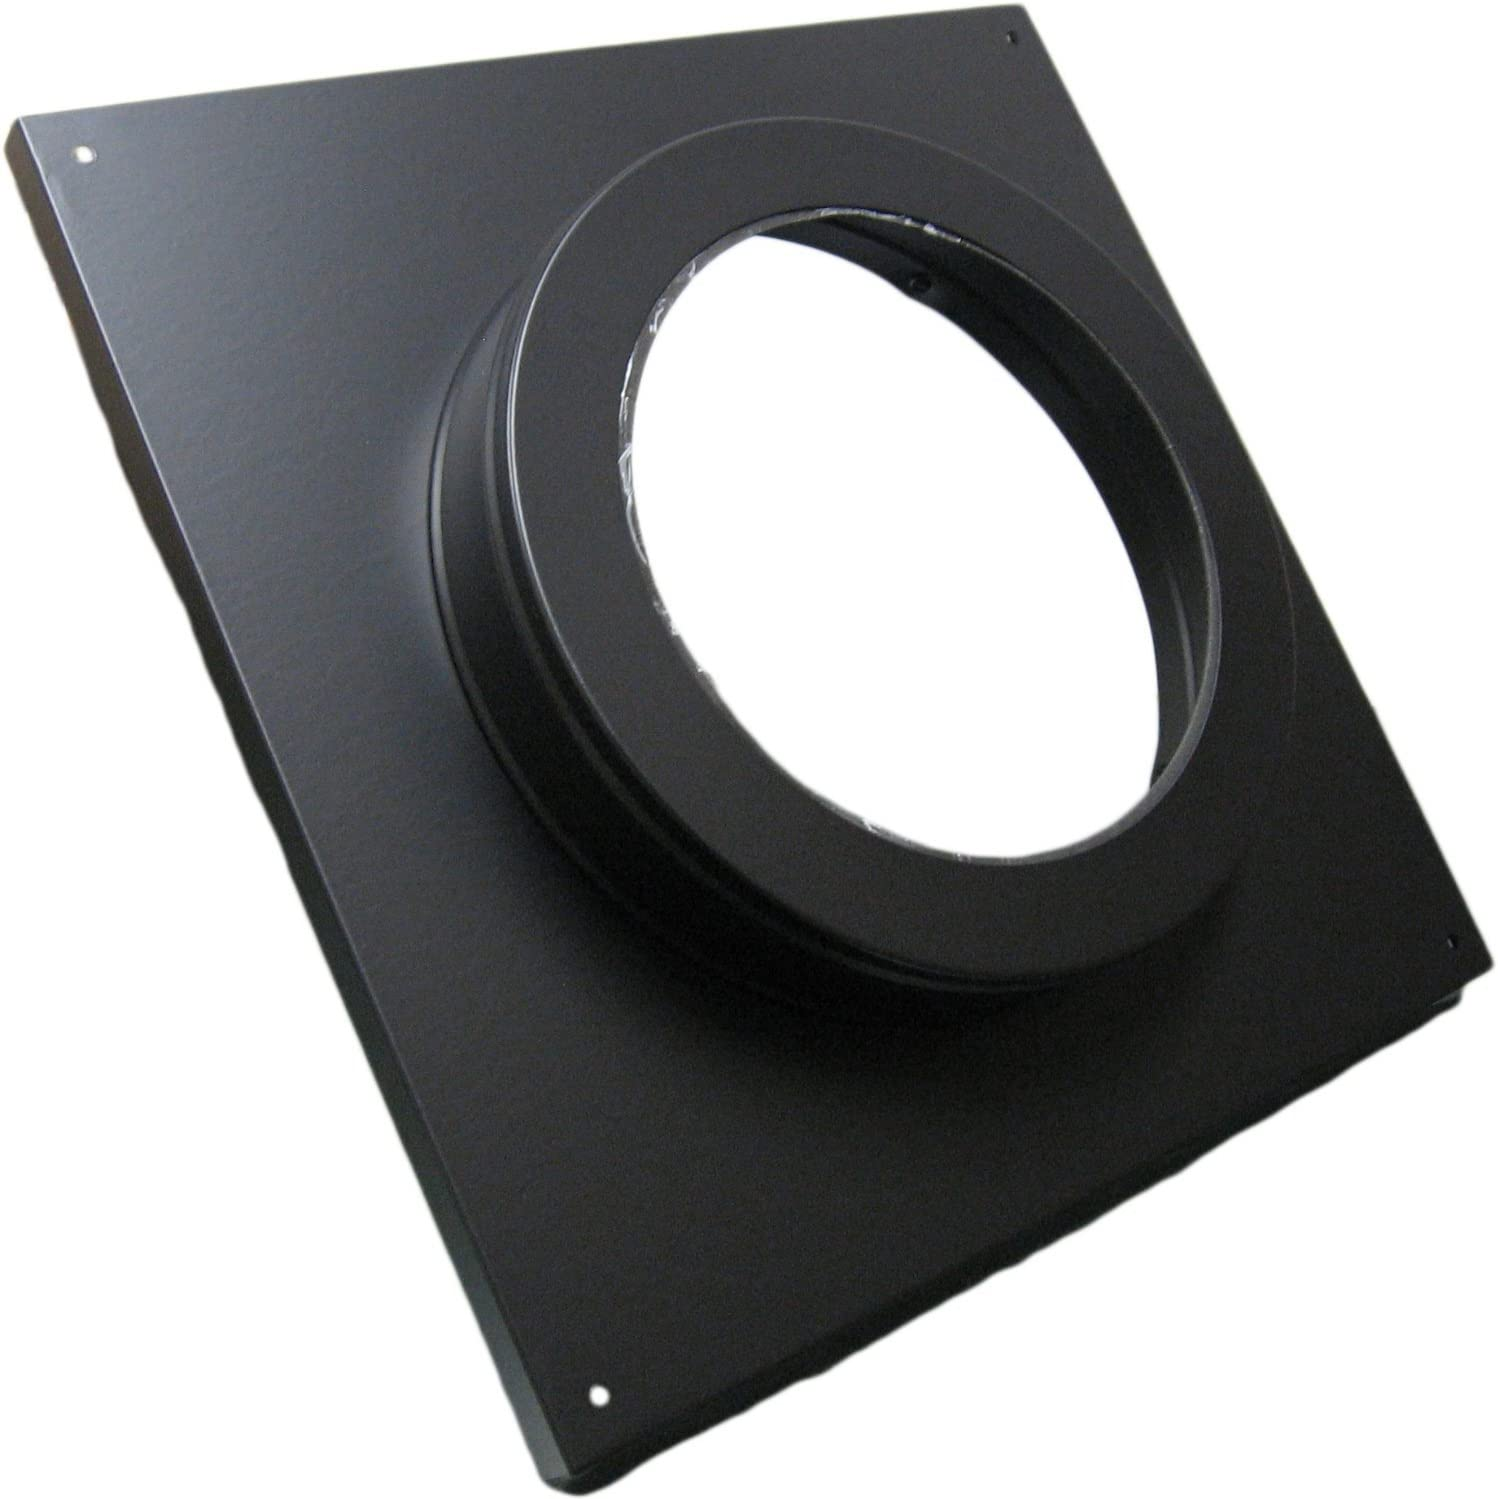 Simpson Dura Vent 46dva Dc Round Ceiling Support Wall Thimble Cover 4 X6 5 8 Direct Vent Black Vents